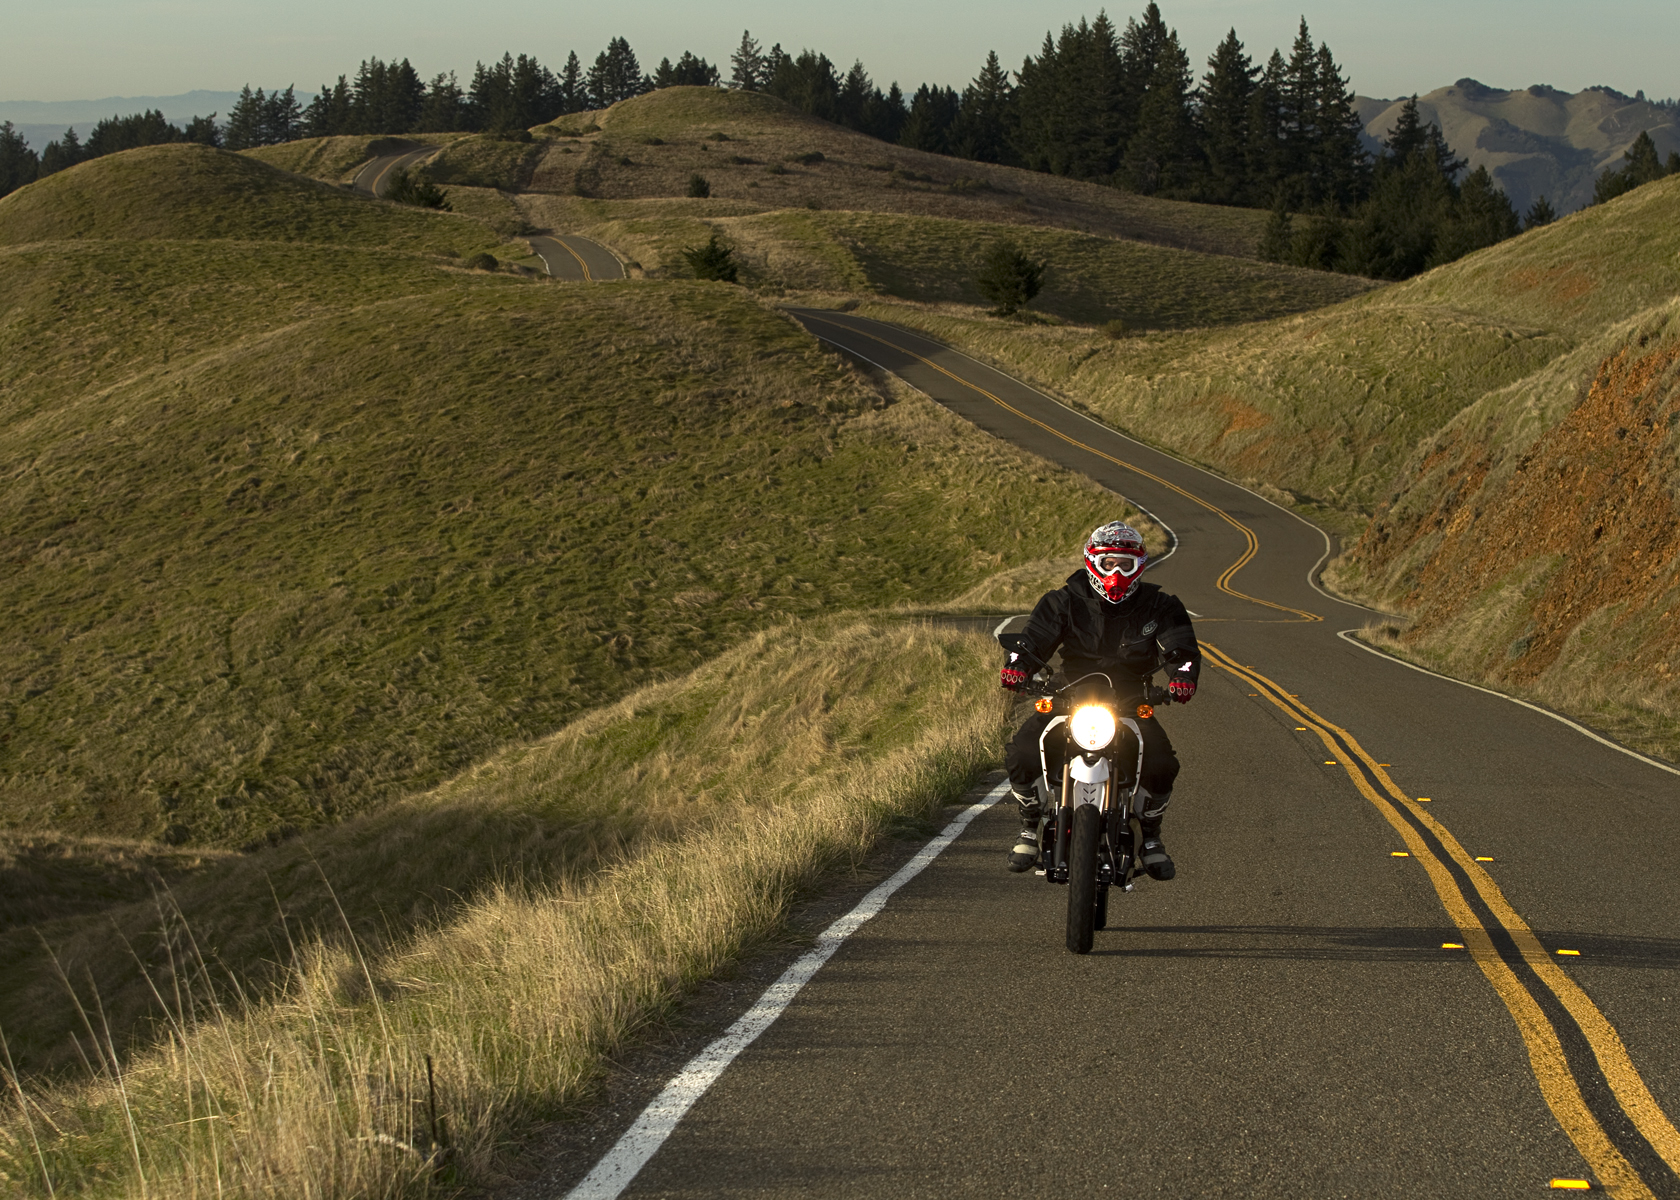 '.2011 Zero DS Electric Motorcycle: Cruising Uphill.'